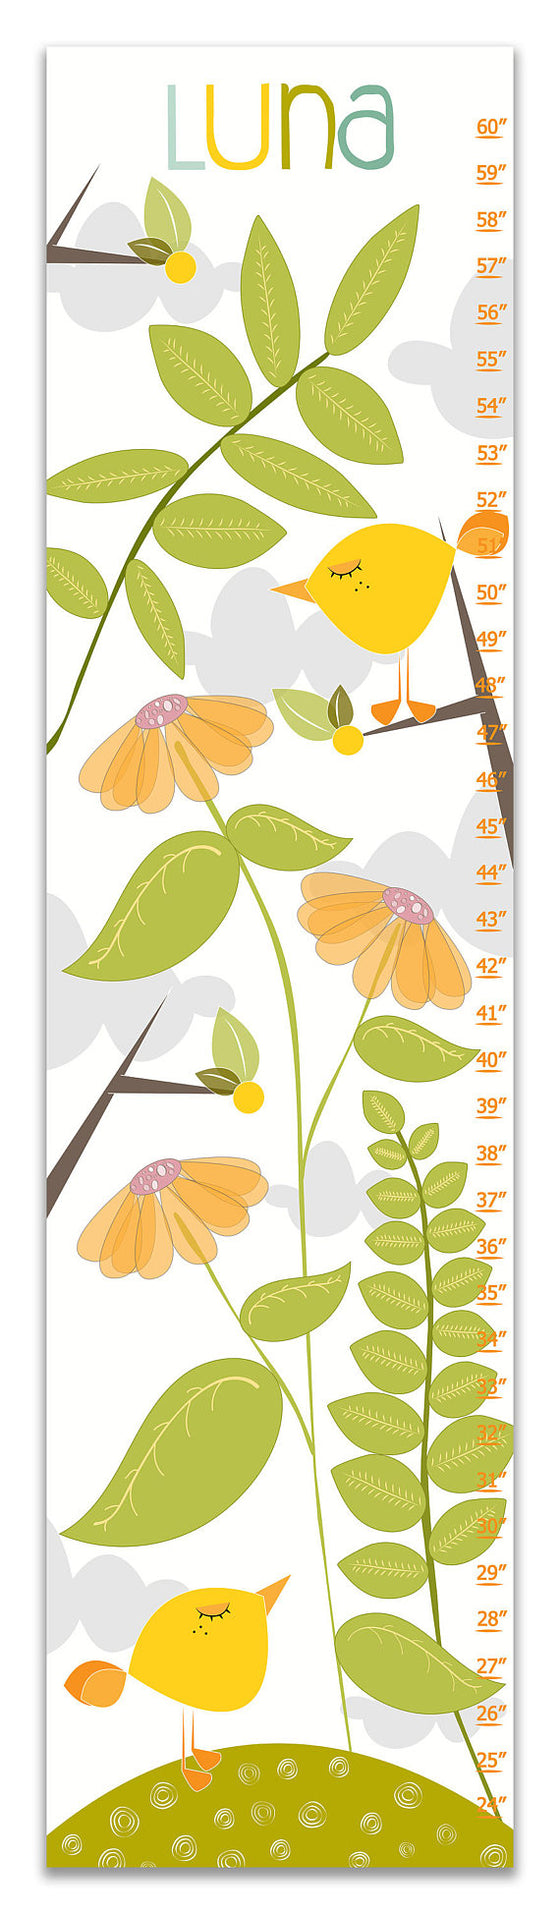 Tweety Birds Personalized Growth Chart - Nursery Decor - Baby Gifts